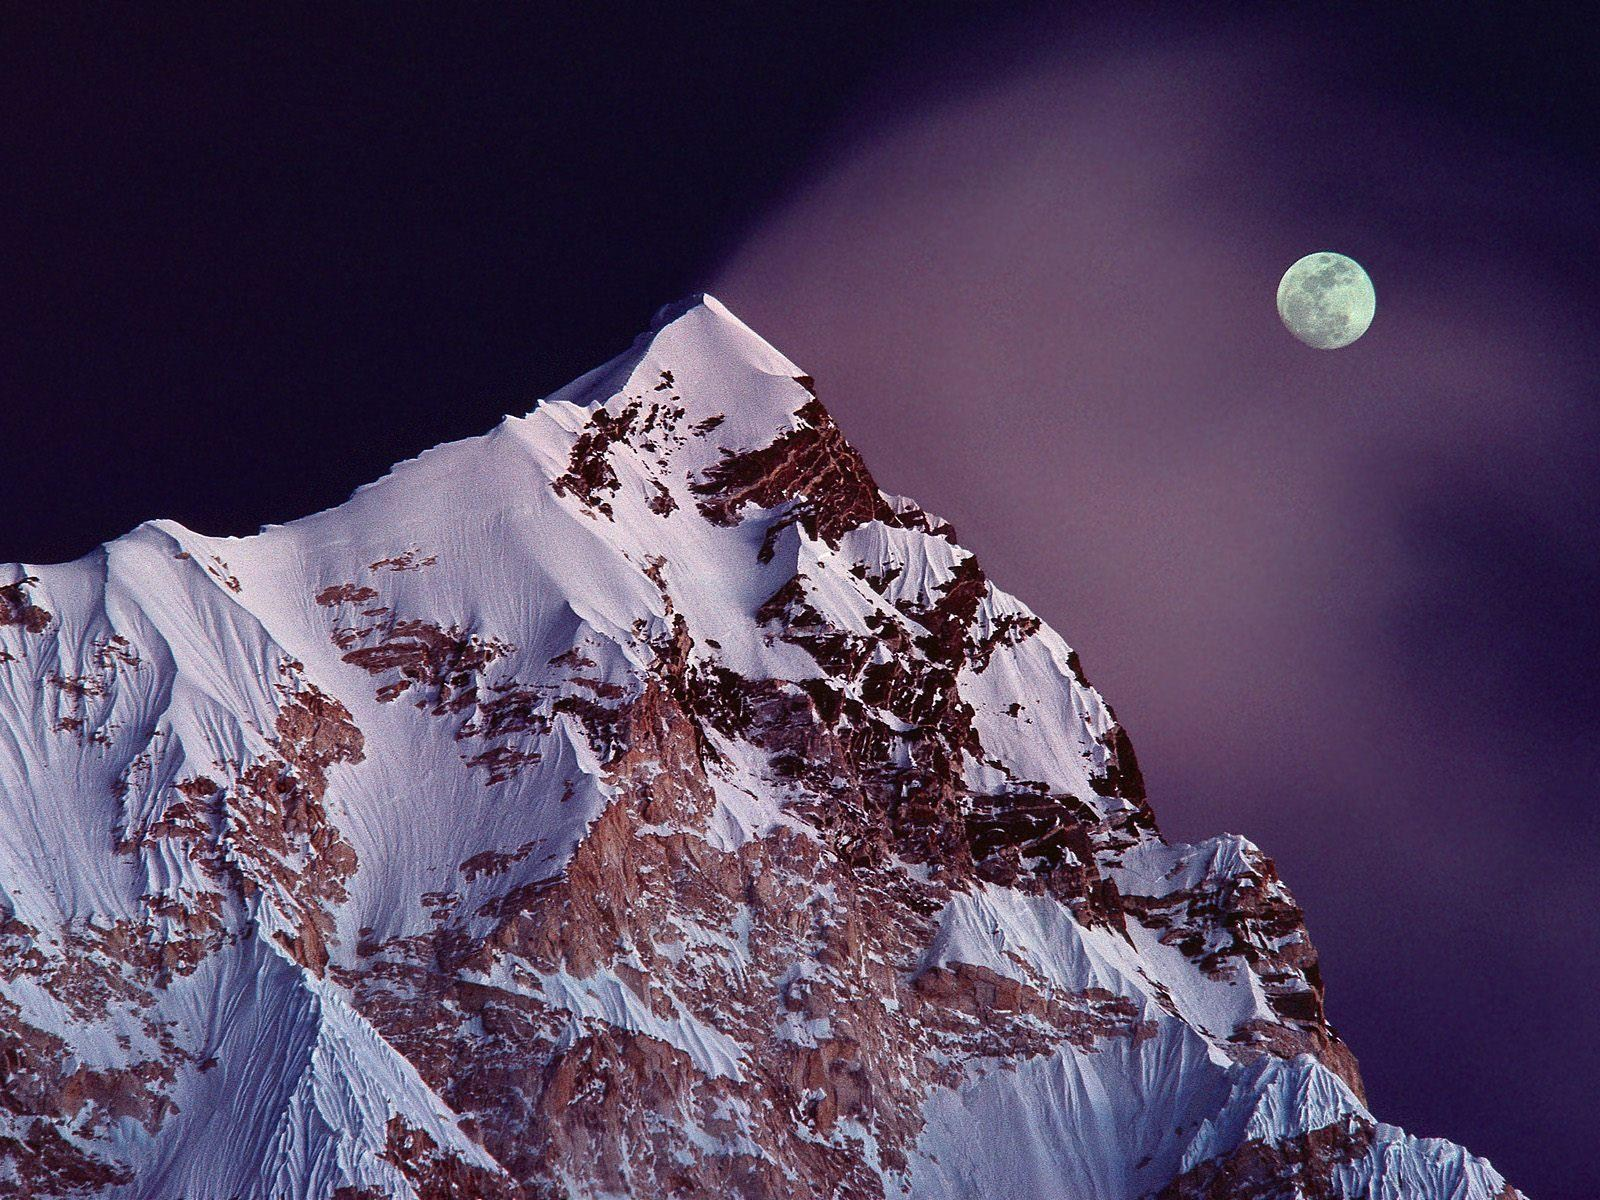 Ice Snowy Rocks Mountains HD Background Wallpapers Widescreen High Resolutions 004